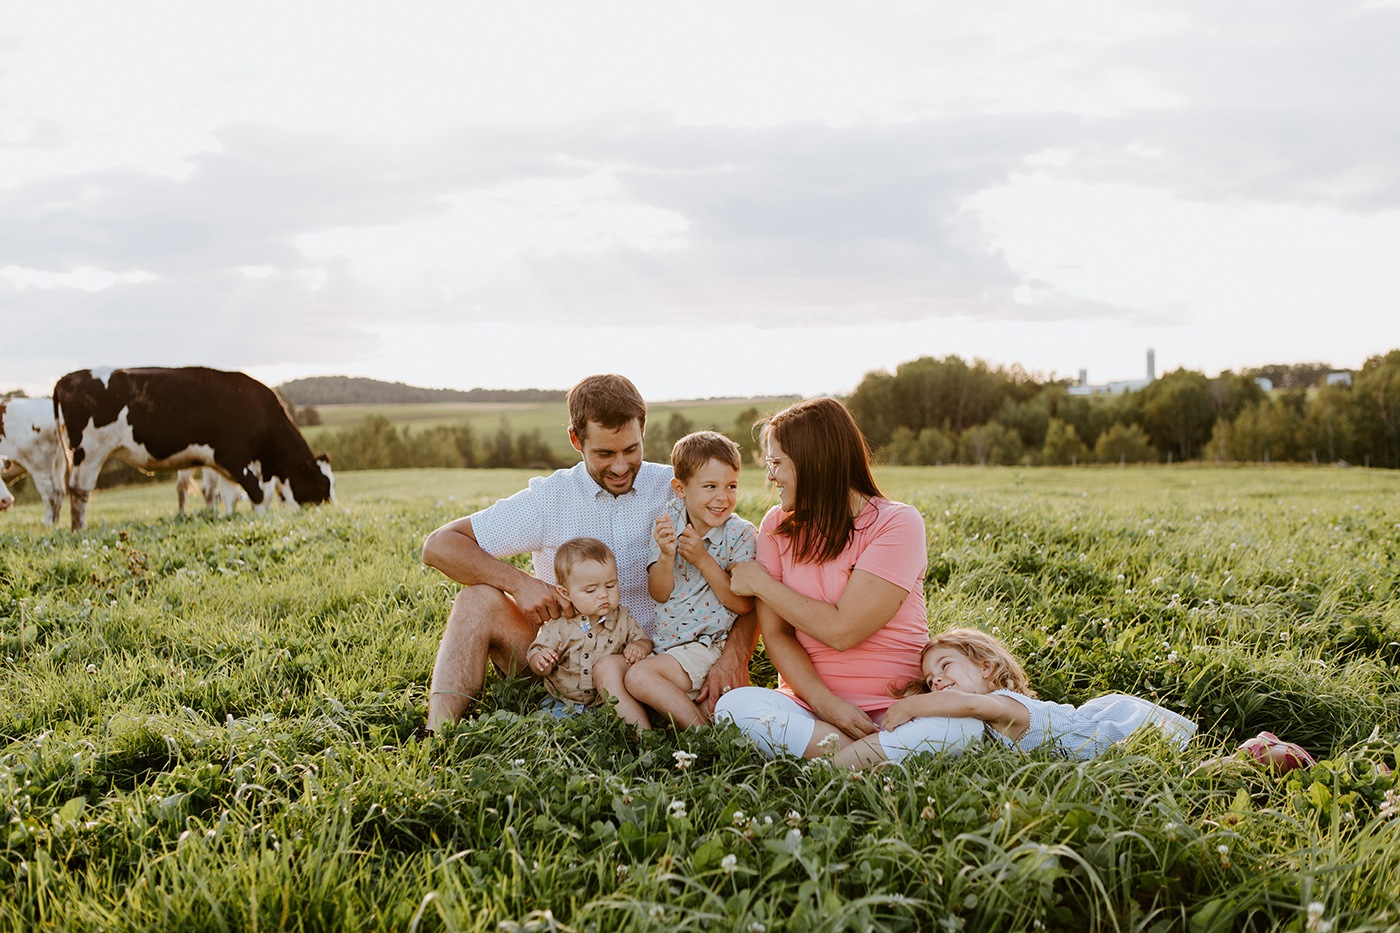 Dairy farm photos with cows. Farm photo session. Family photos with cows. Countryside family photos. Séance photo à la ferme avec des vaches. Séance photo ferme laitière. Photographe de famille à Montréal. Montreal family photographer.